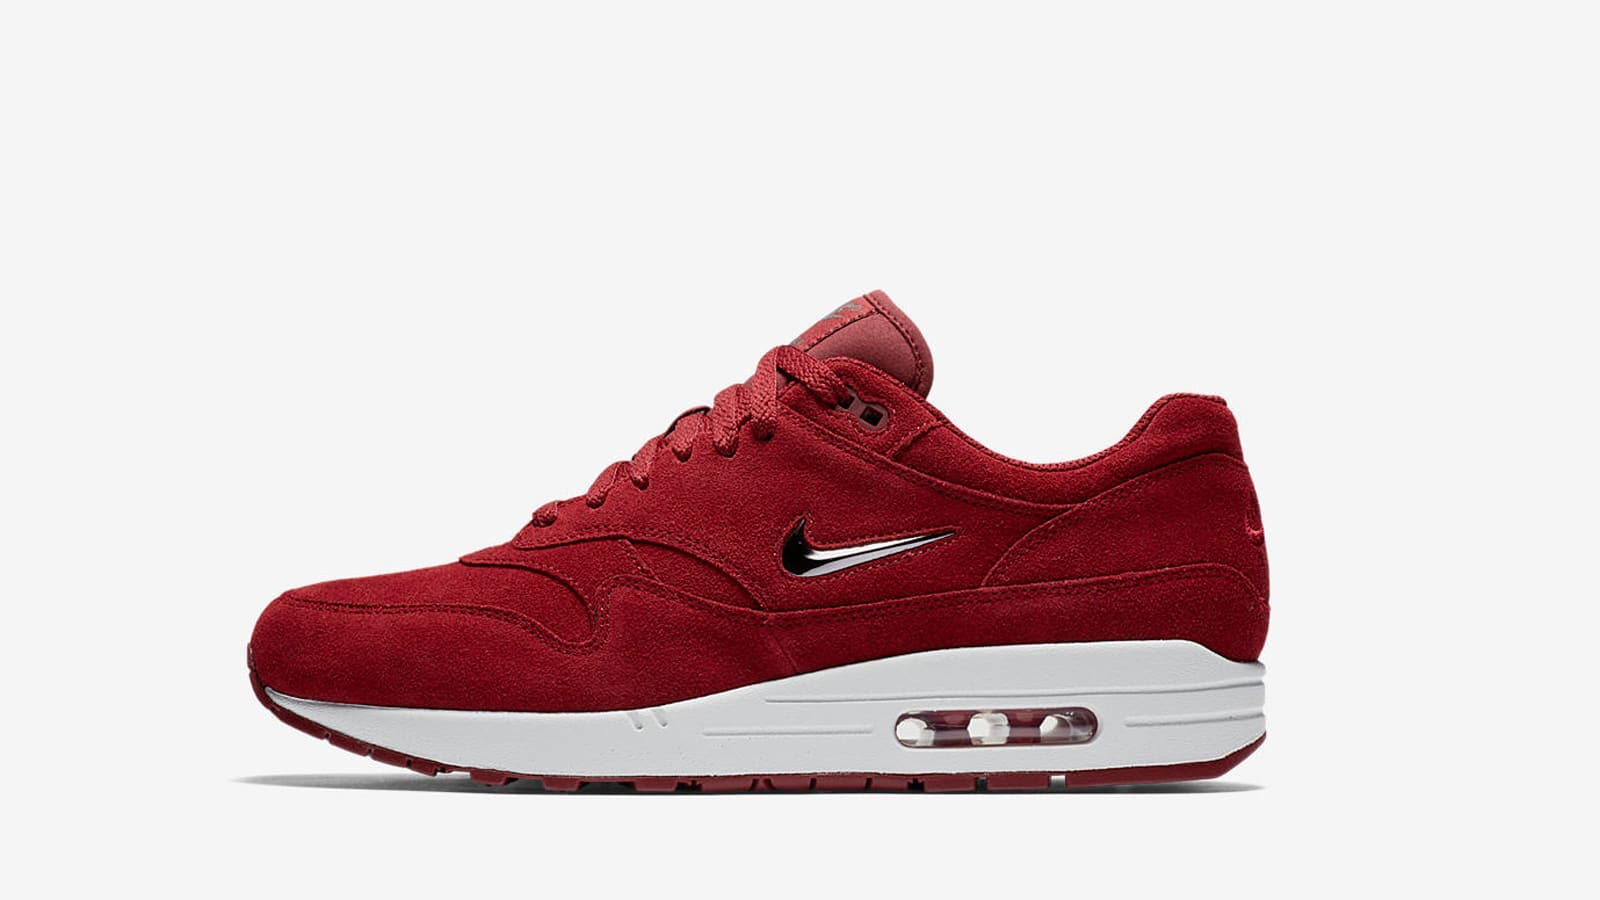 best place best place skate shoes END. Features | Nike Air Max 1 Premium Jewel Pack - Now Online